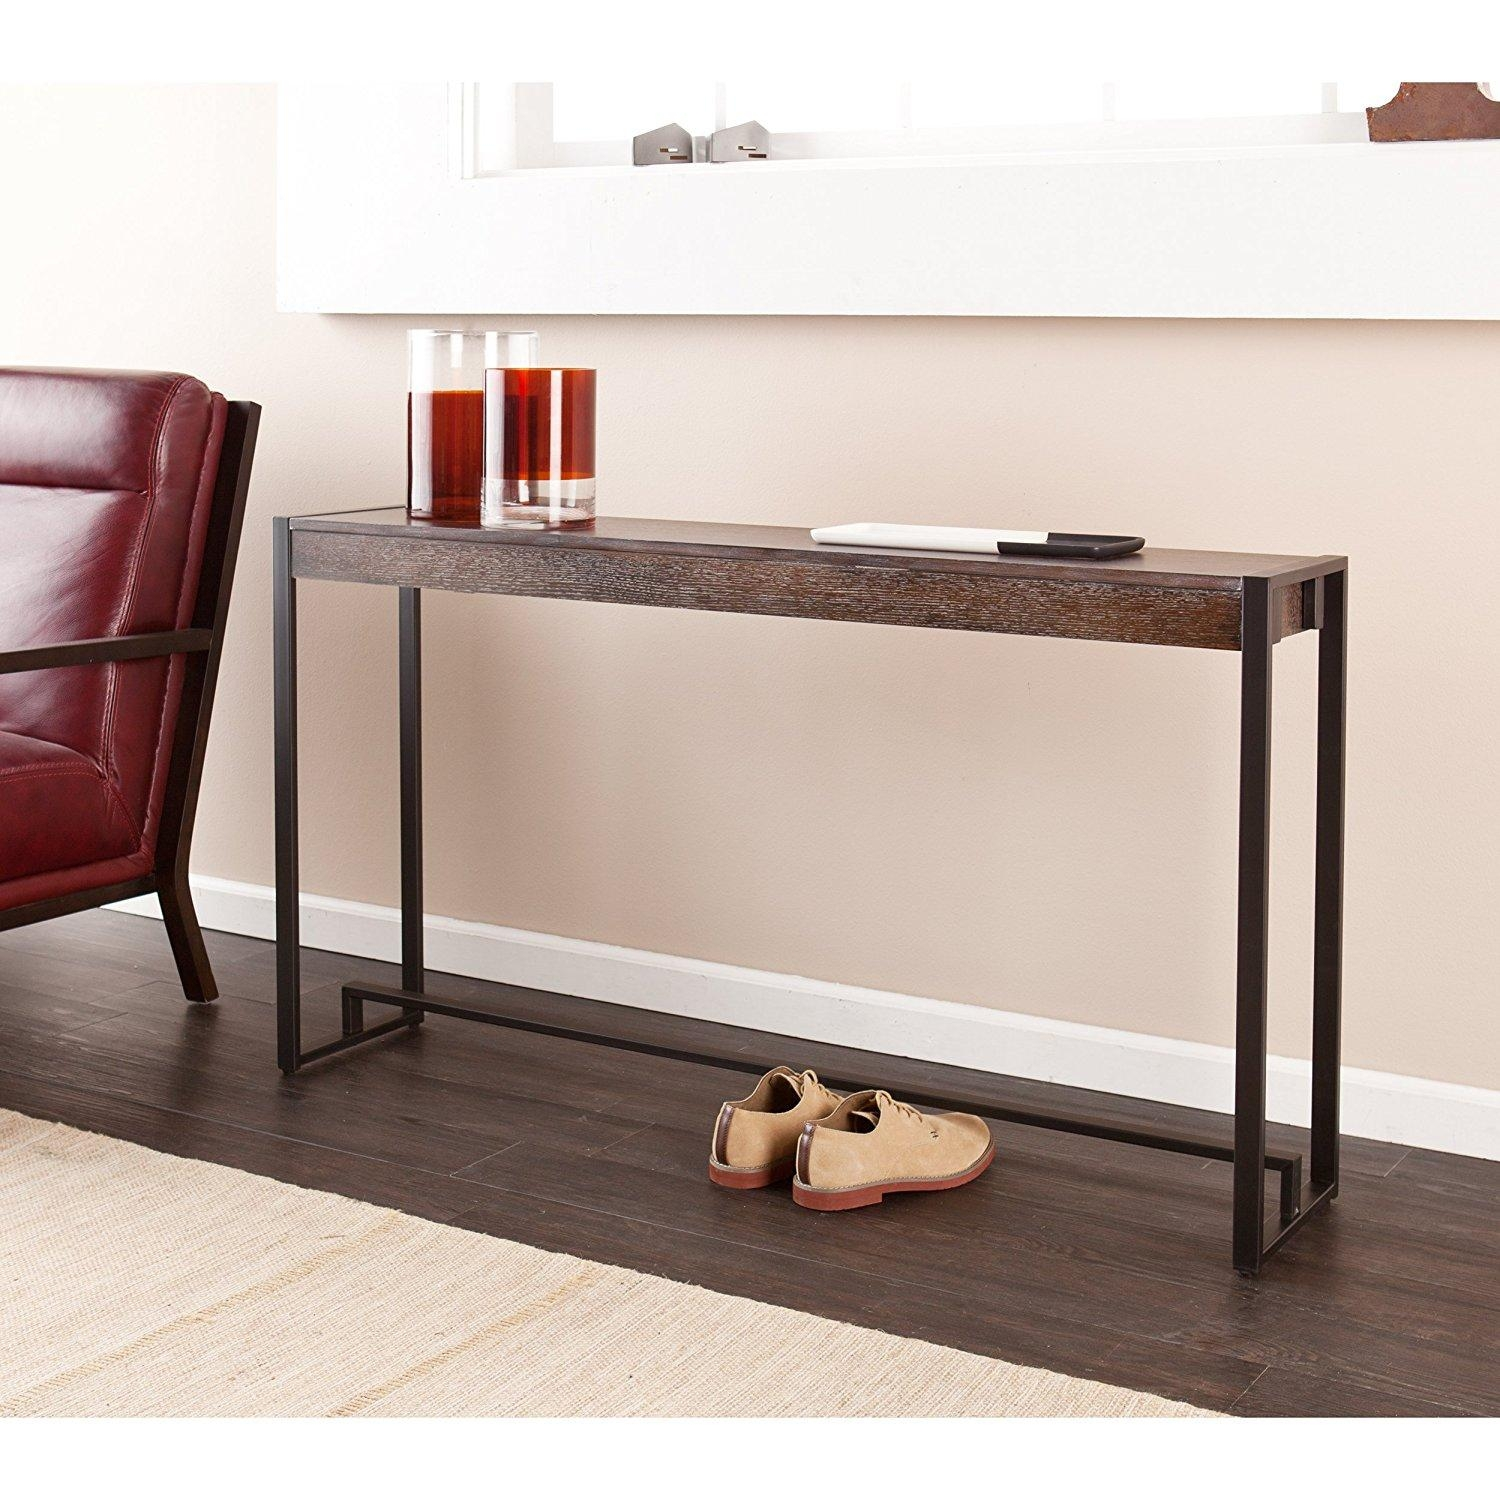 Sofas Center : Sofa Back Table Console Tables Ikea Black At Home Throughout Sofa Back Console (Photo 4 of 20)